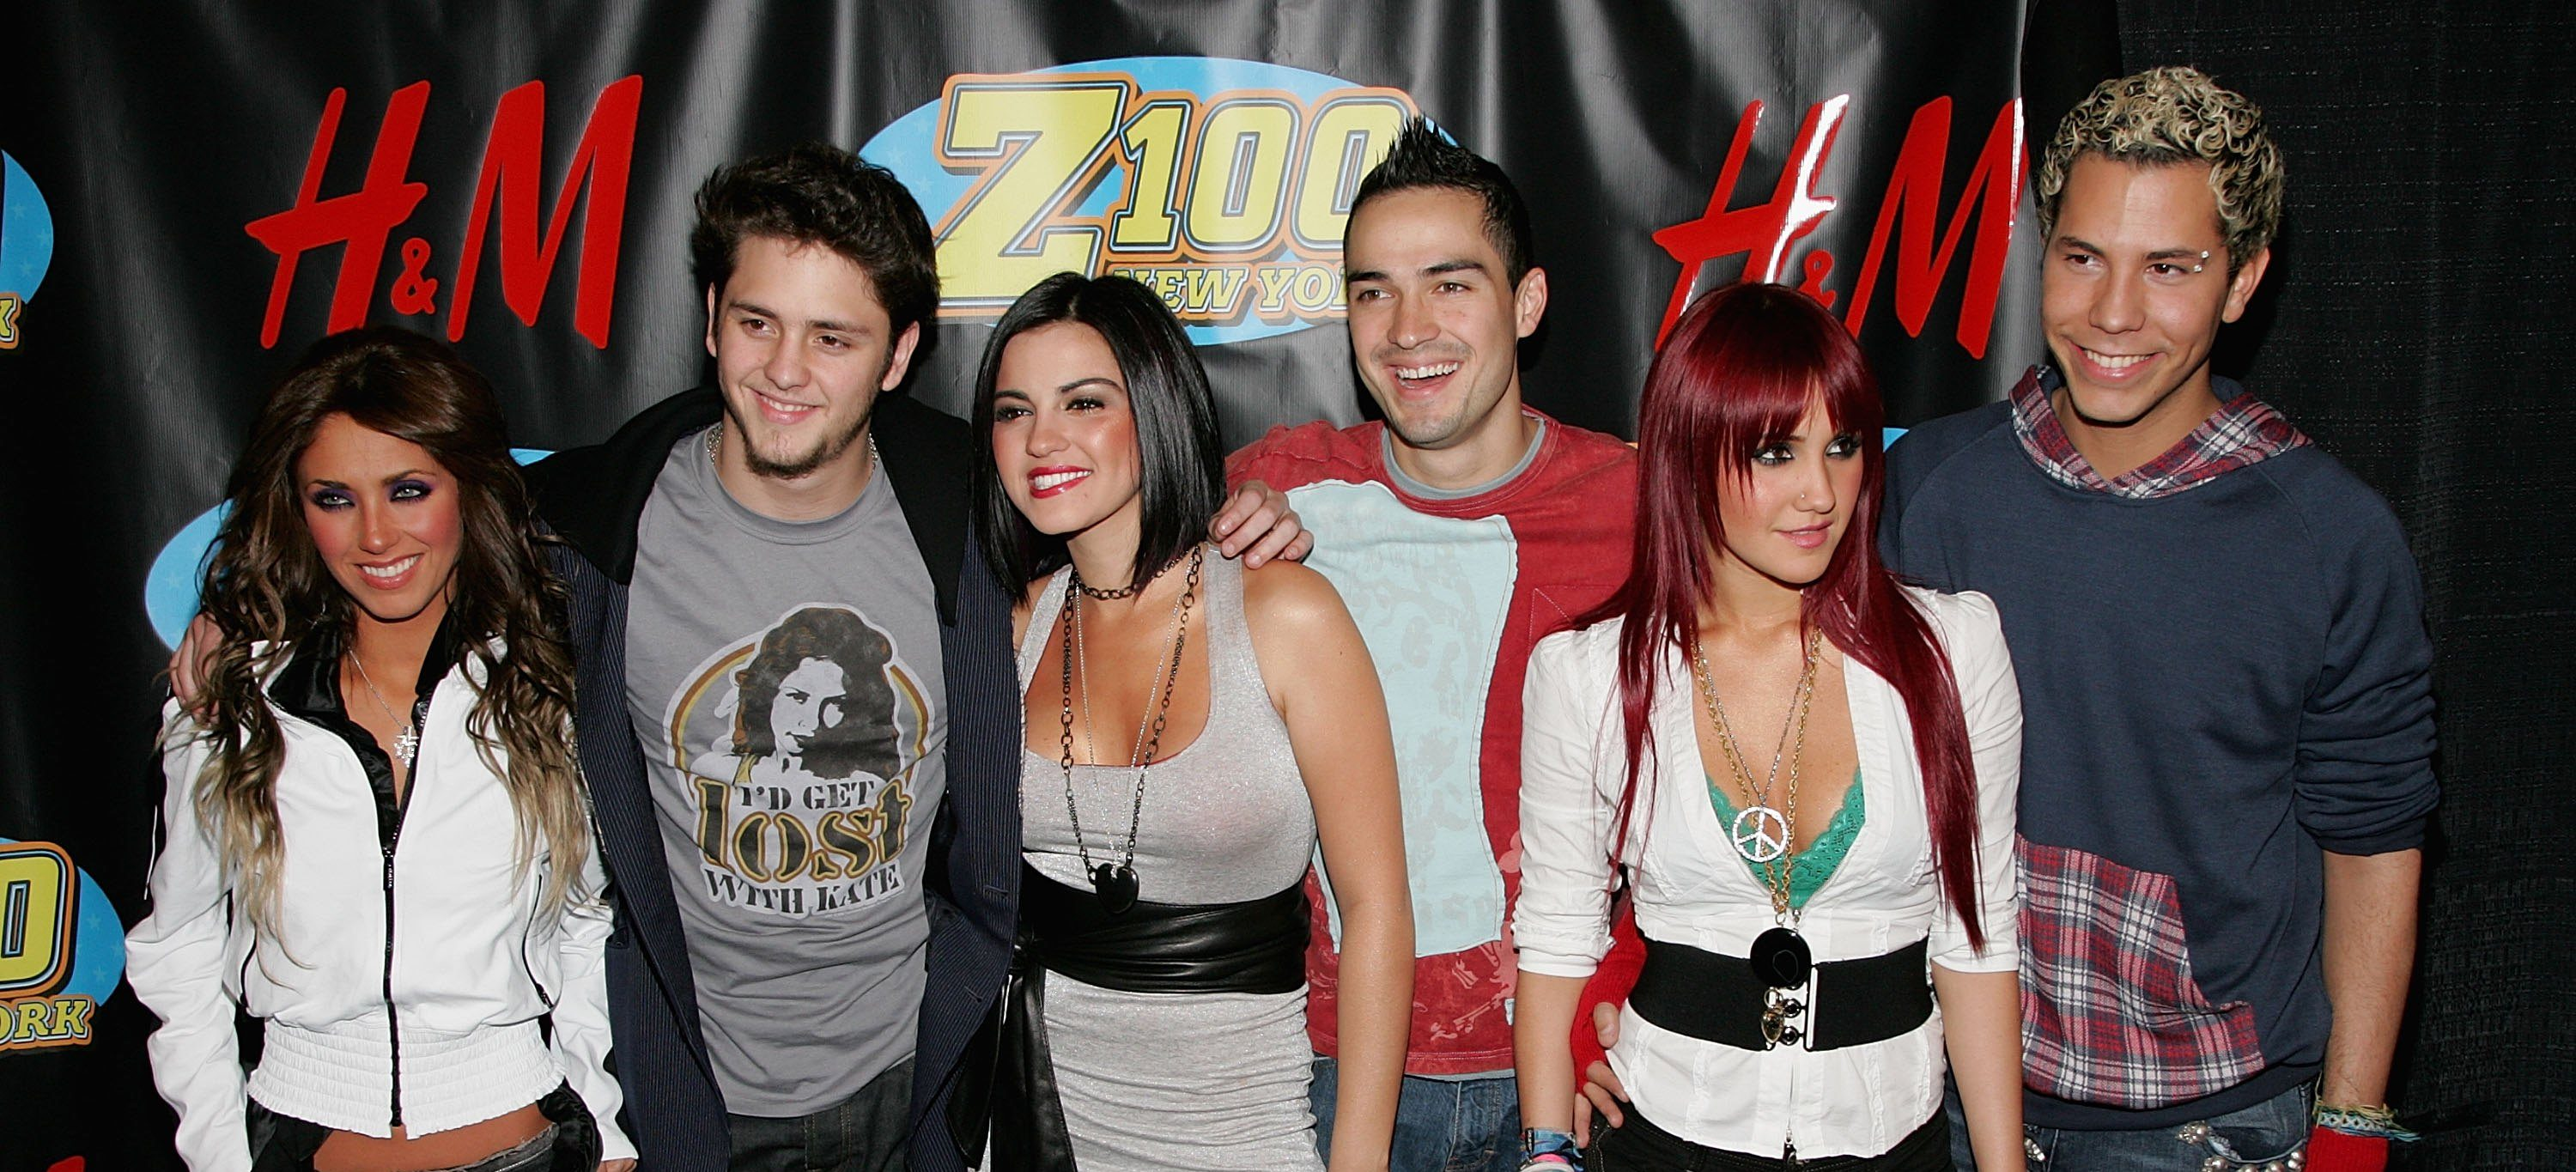 TEASER: If You're Dreaming of an RBD Reunion, This Documentary Is the Next Best Thing